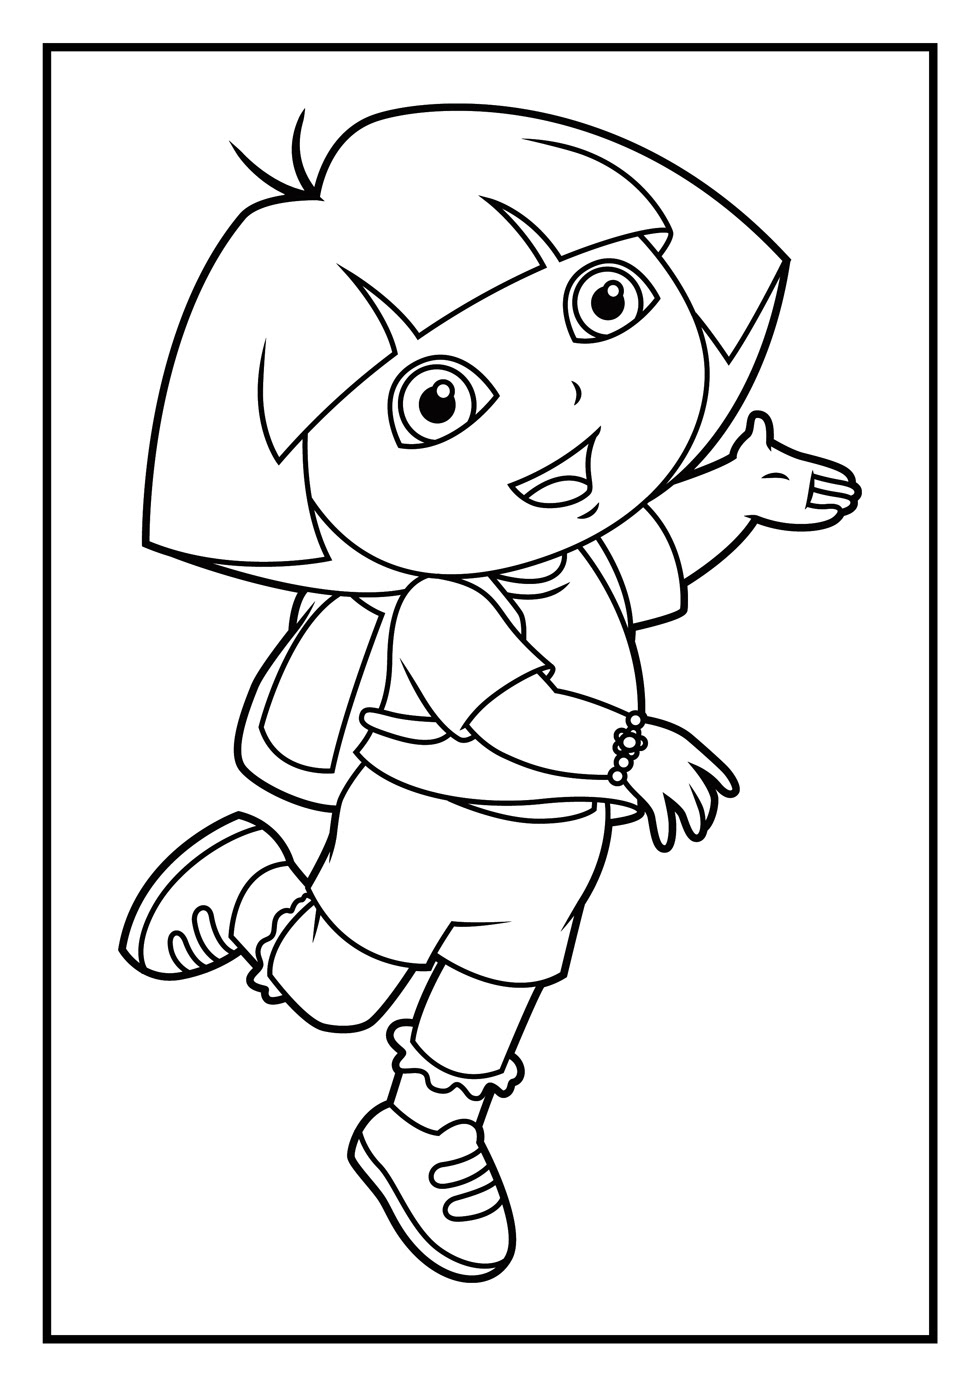 Dora The Explorer Coloring Pages For Kids Drawing With Crayons